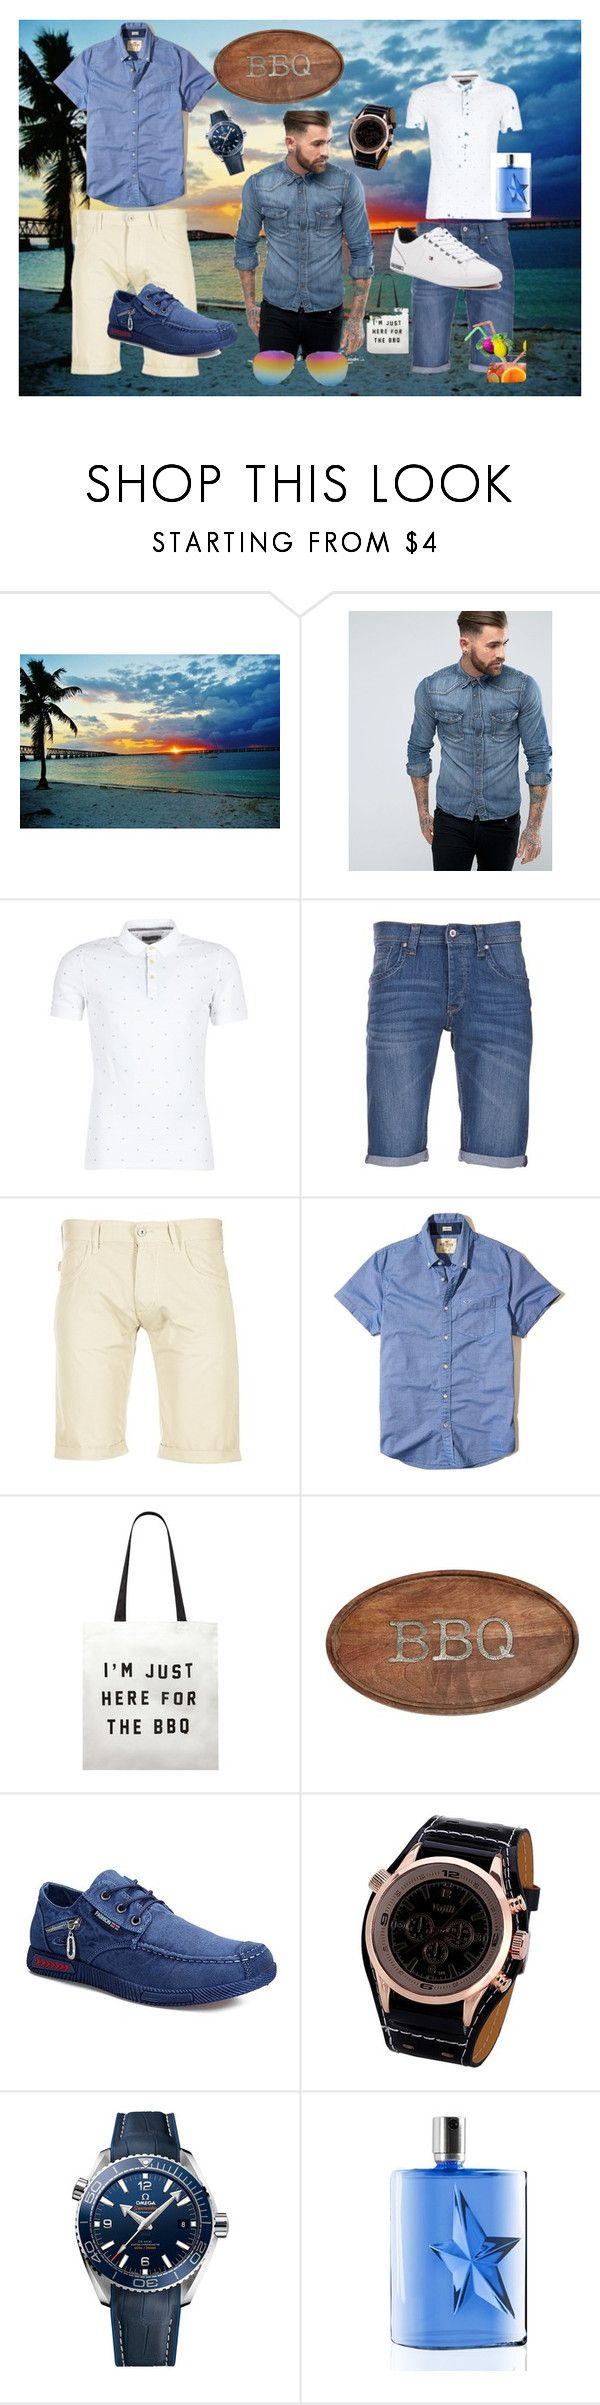 """""""A Man's Look!"""" by ritty18 on Polyvore featuring Nudie Jeans Co., Calvin Klein Jeans, Pepe Jeans London, Armani Jeans, Hollister Co., Forever 21, Mud Pie, OMEGA, Thierry Mugler and men's fashion"""